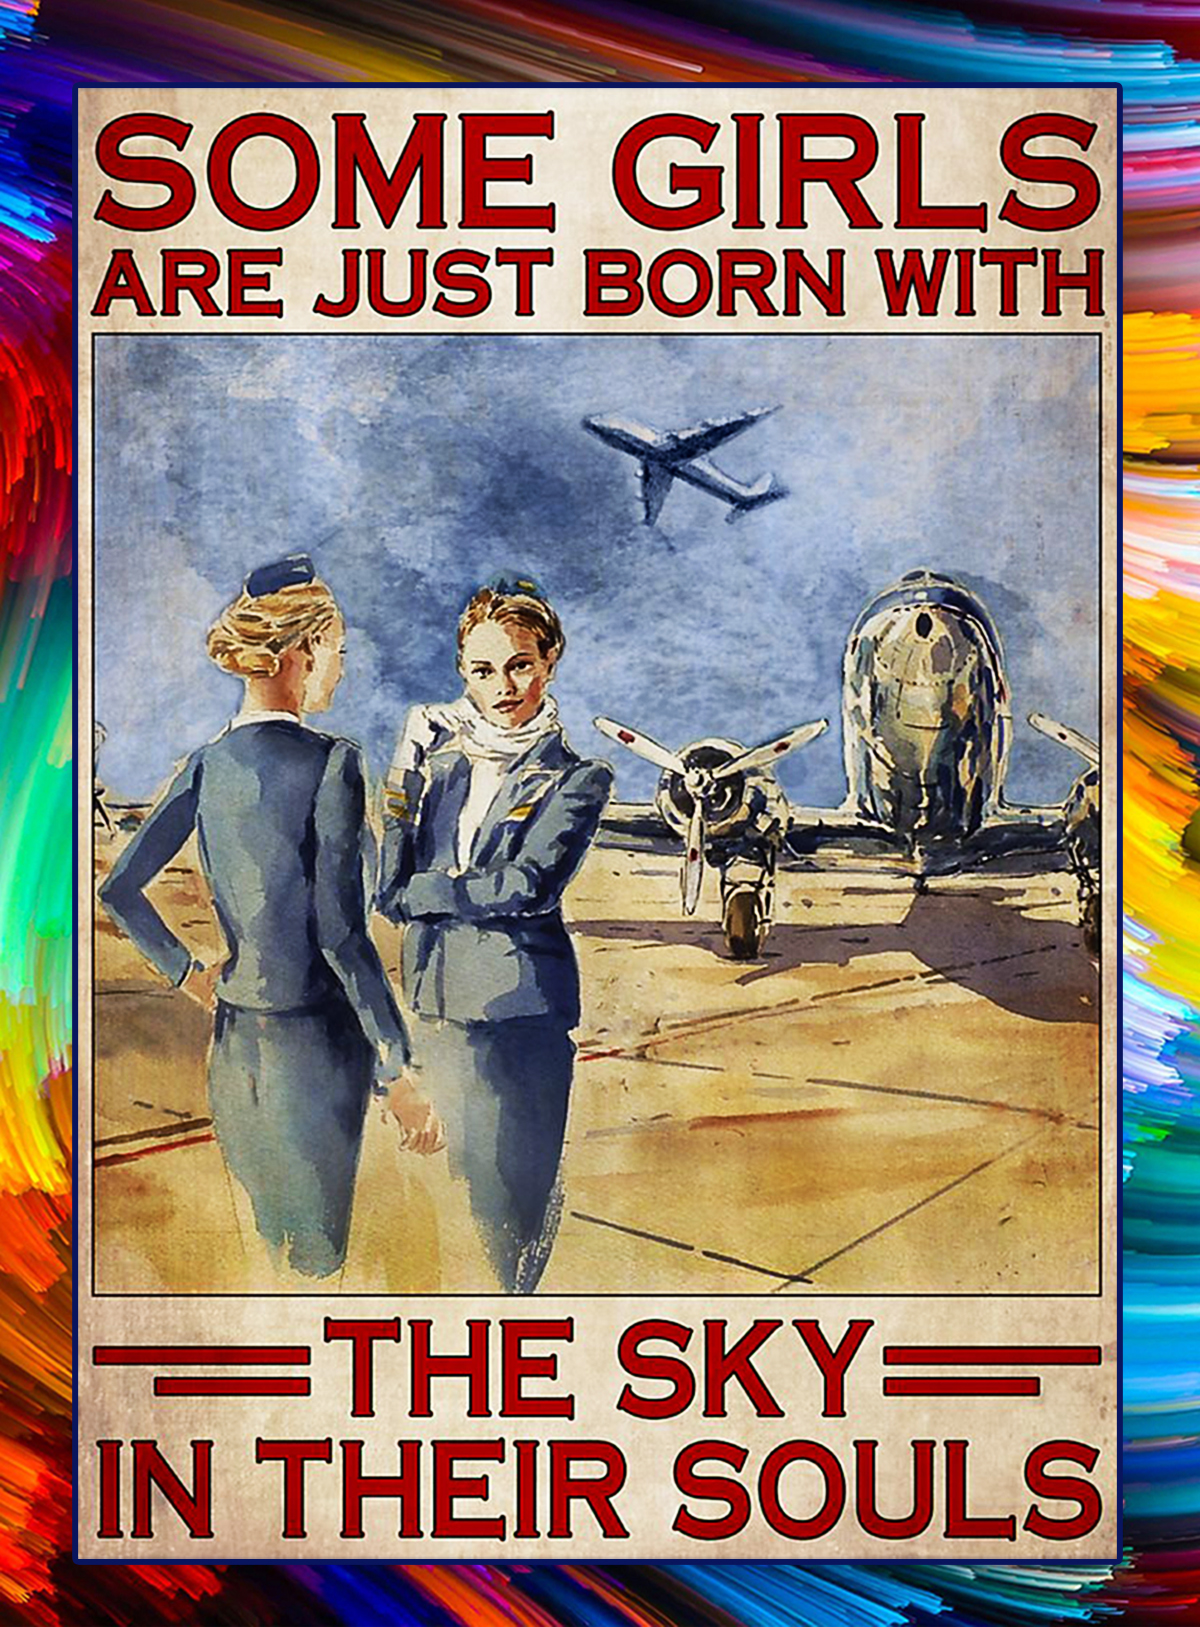 Flight attendant Some girls are just born with the sky in their souls poster - A1